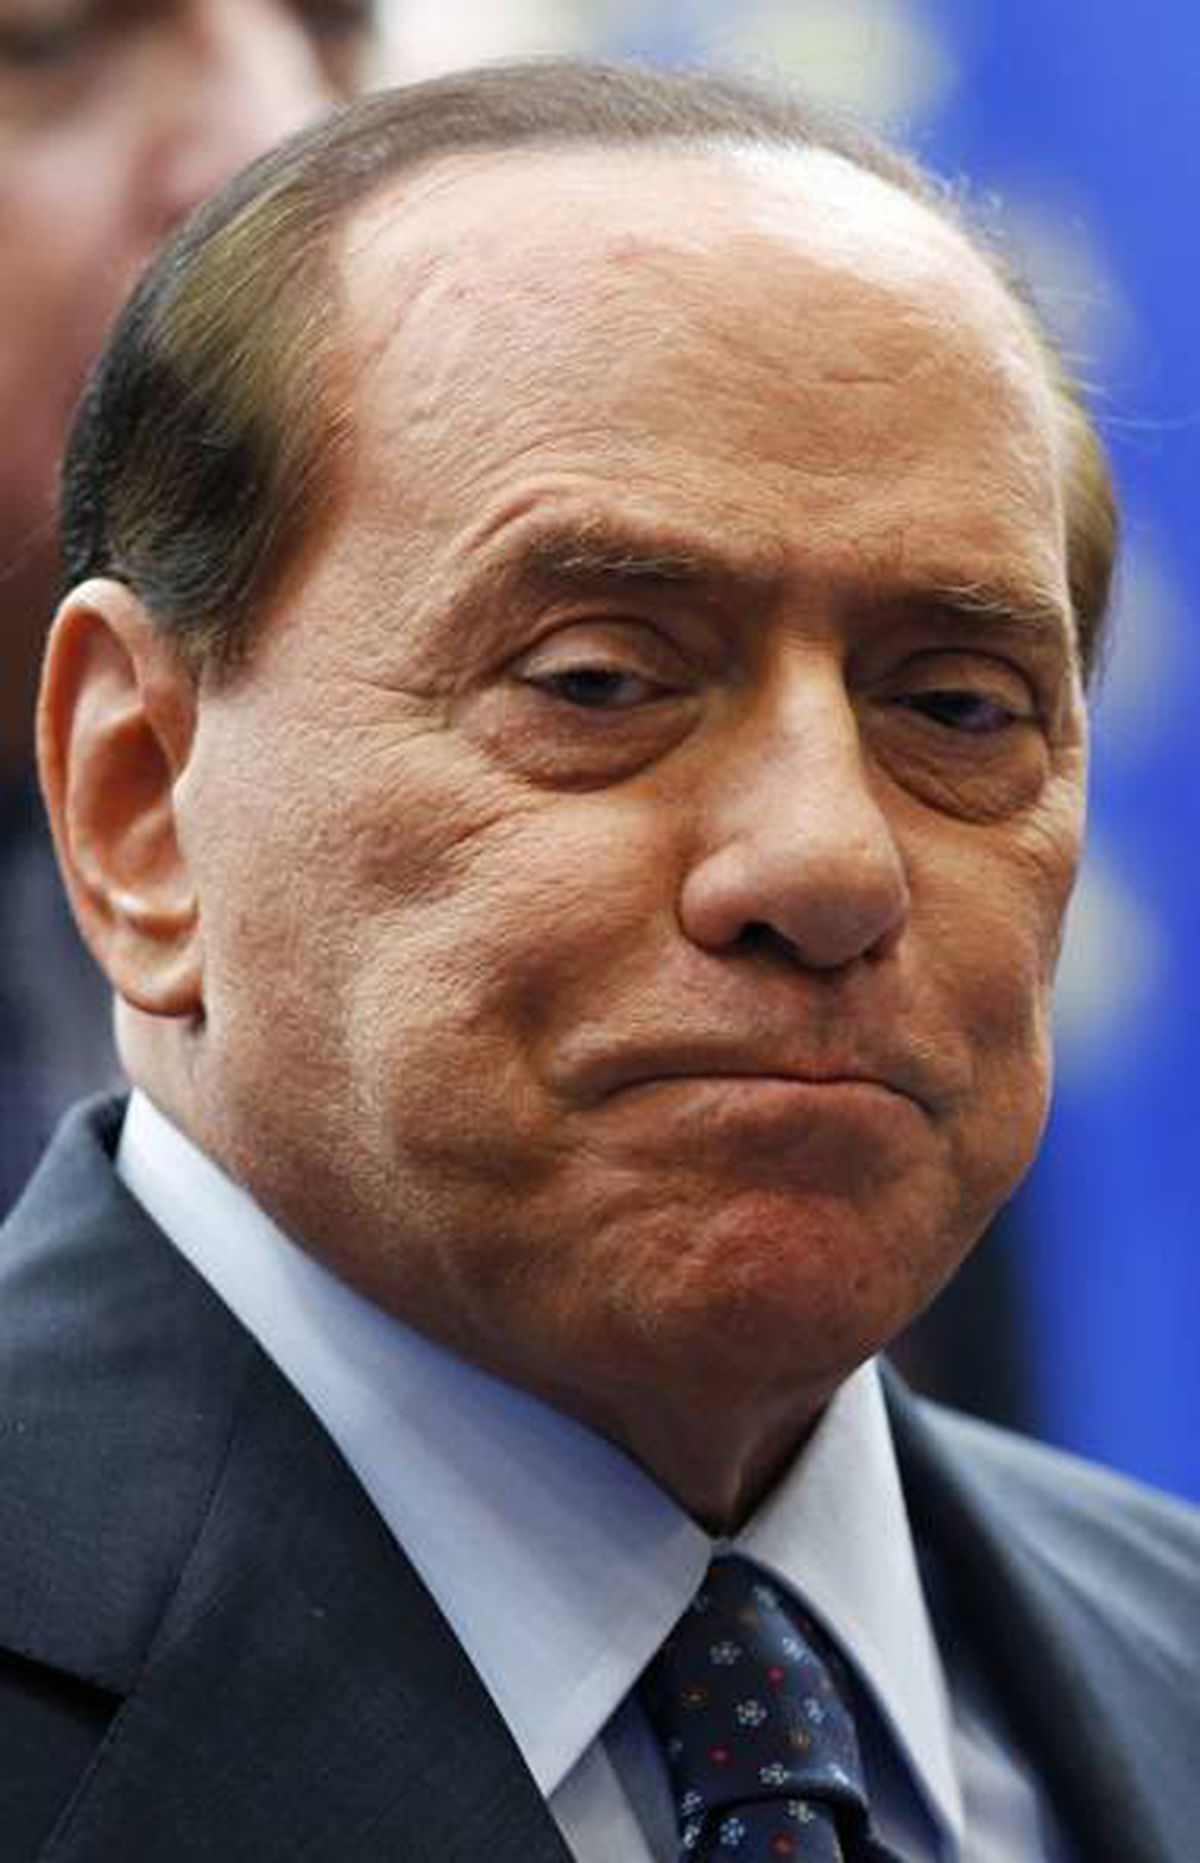 """ITALY: Italian Prime Minister Silvio Berlusconi is """"feckless, vain and ineffective"""" and his """"frequent late nights and penchant for partying hard mean he does not get sufficient rest,"""" a U.S. diplomat said."""